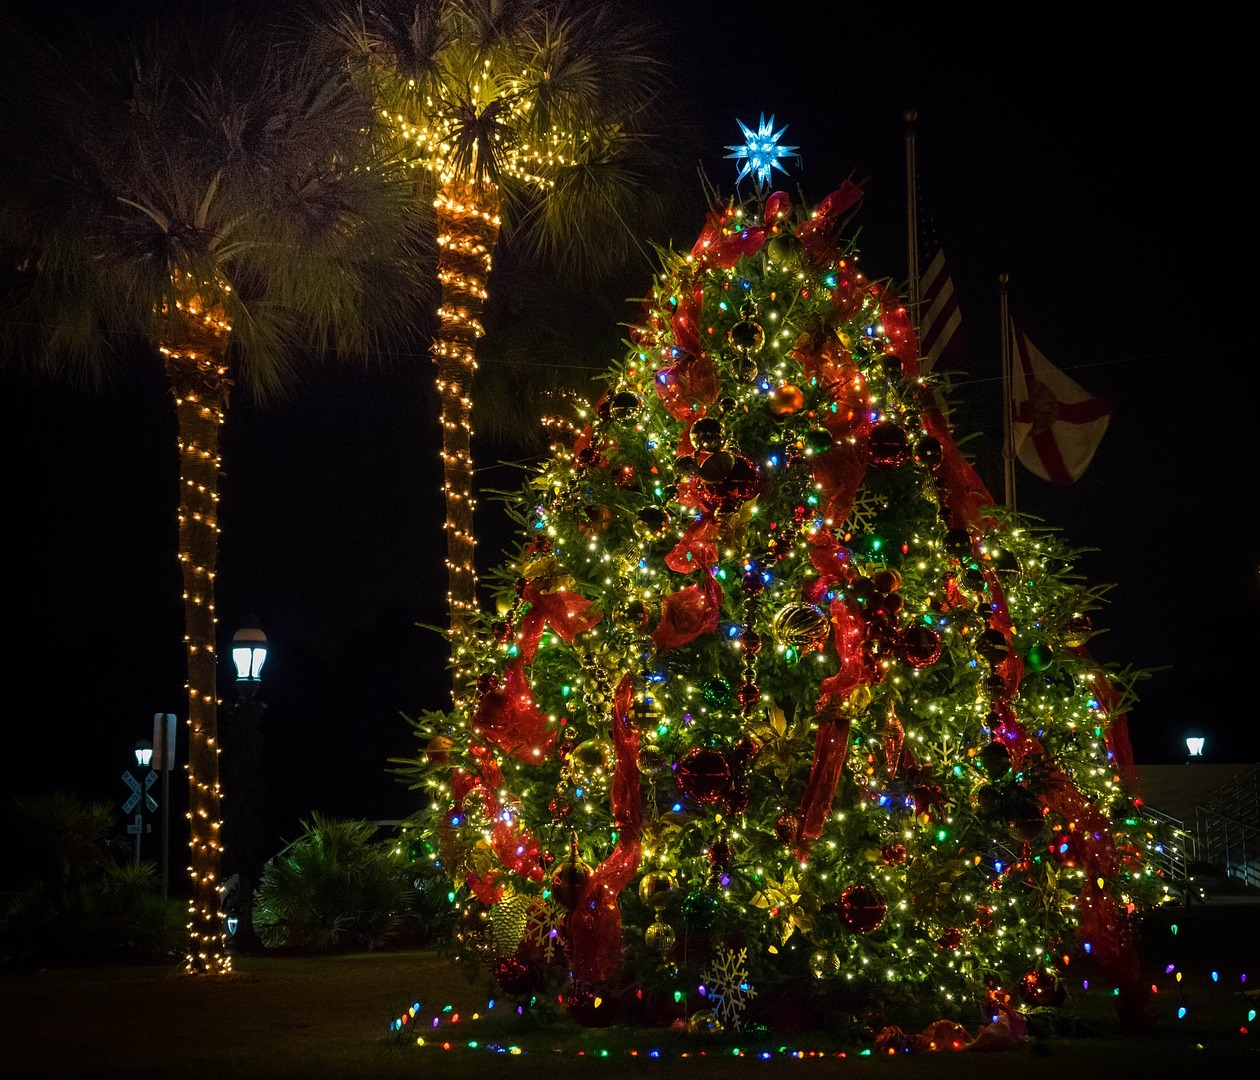 Florida Christmas.How To Celebrate Christmas In Florida